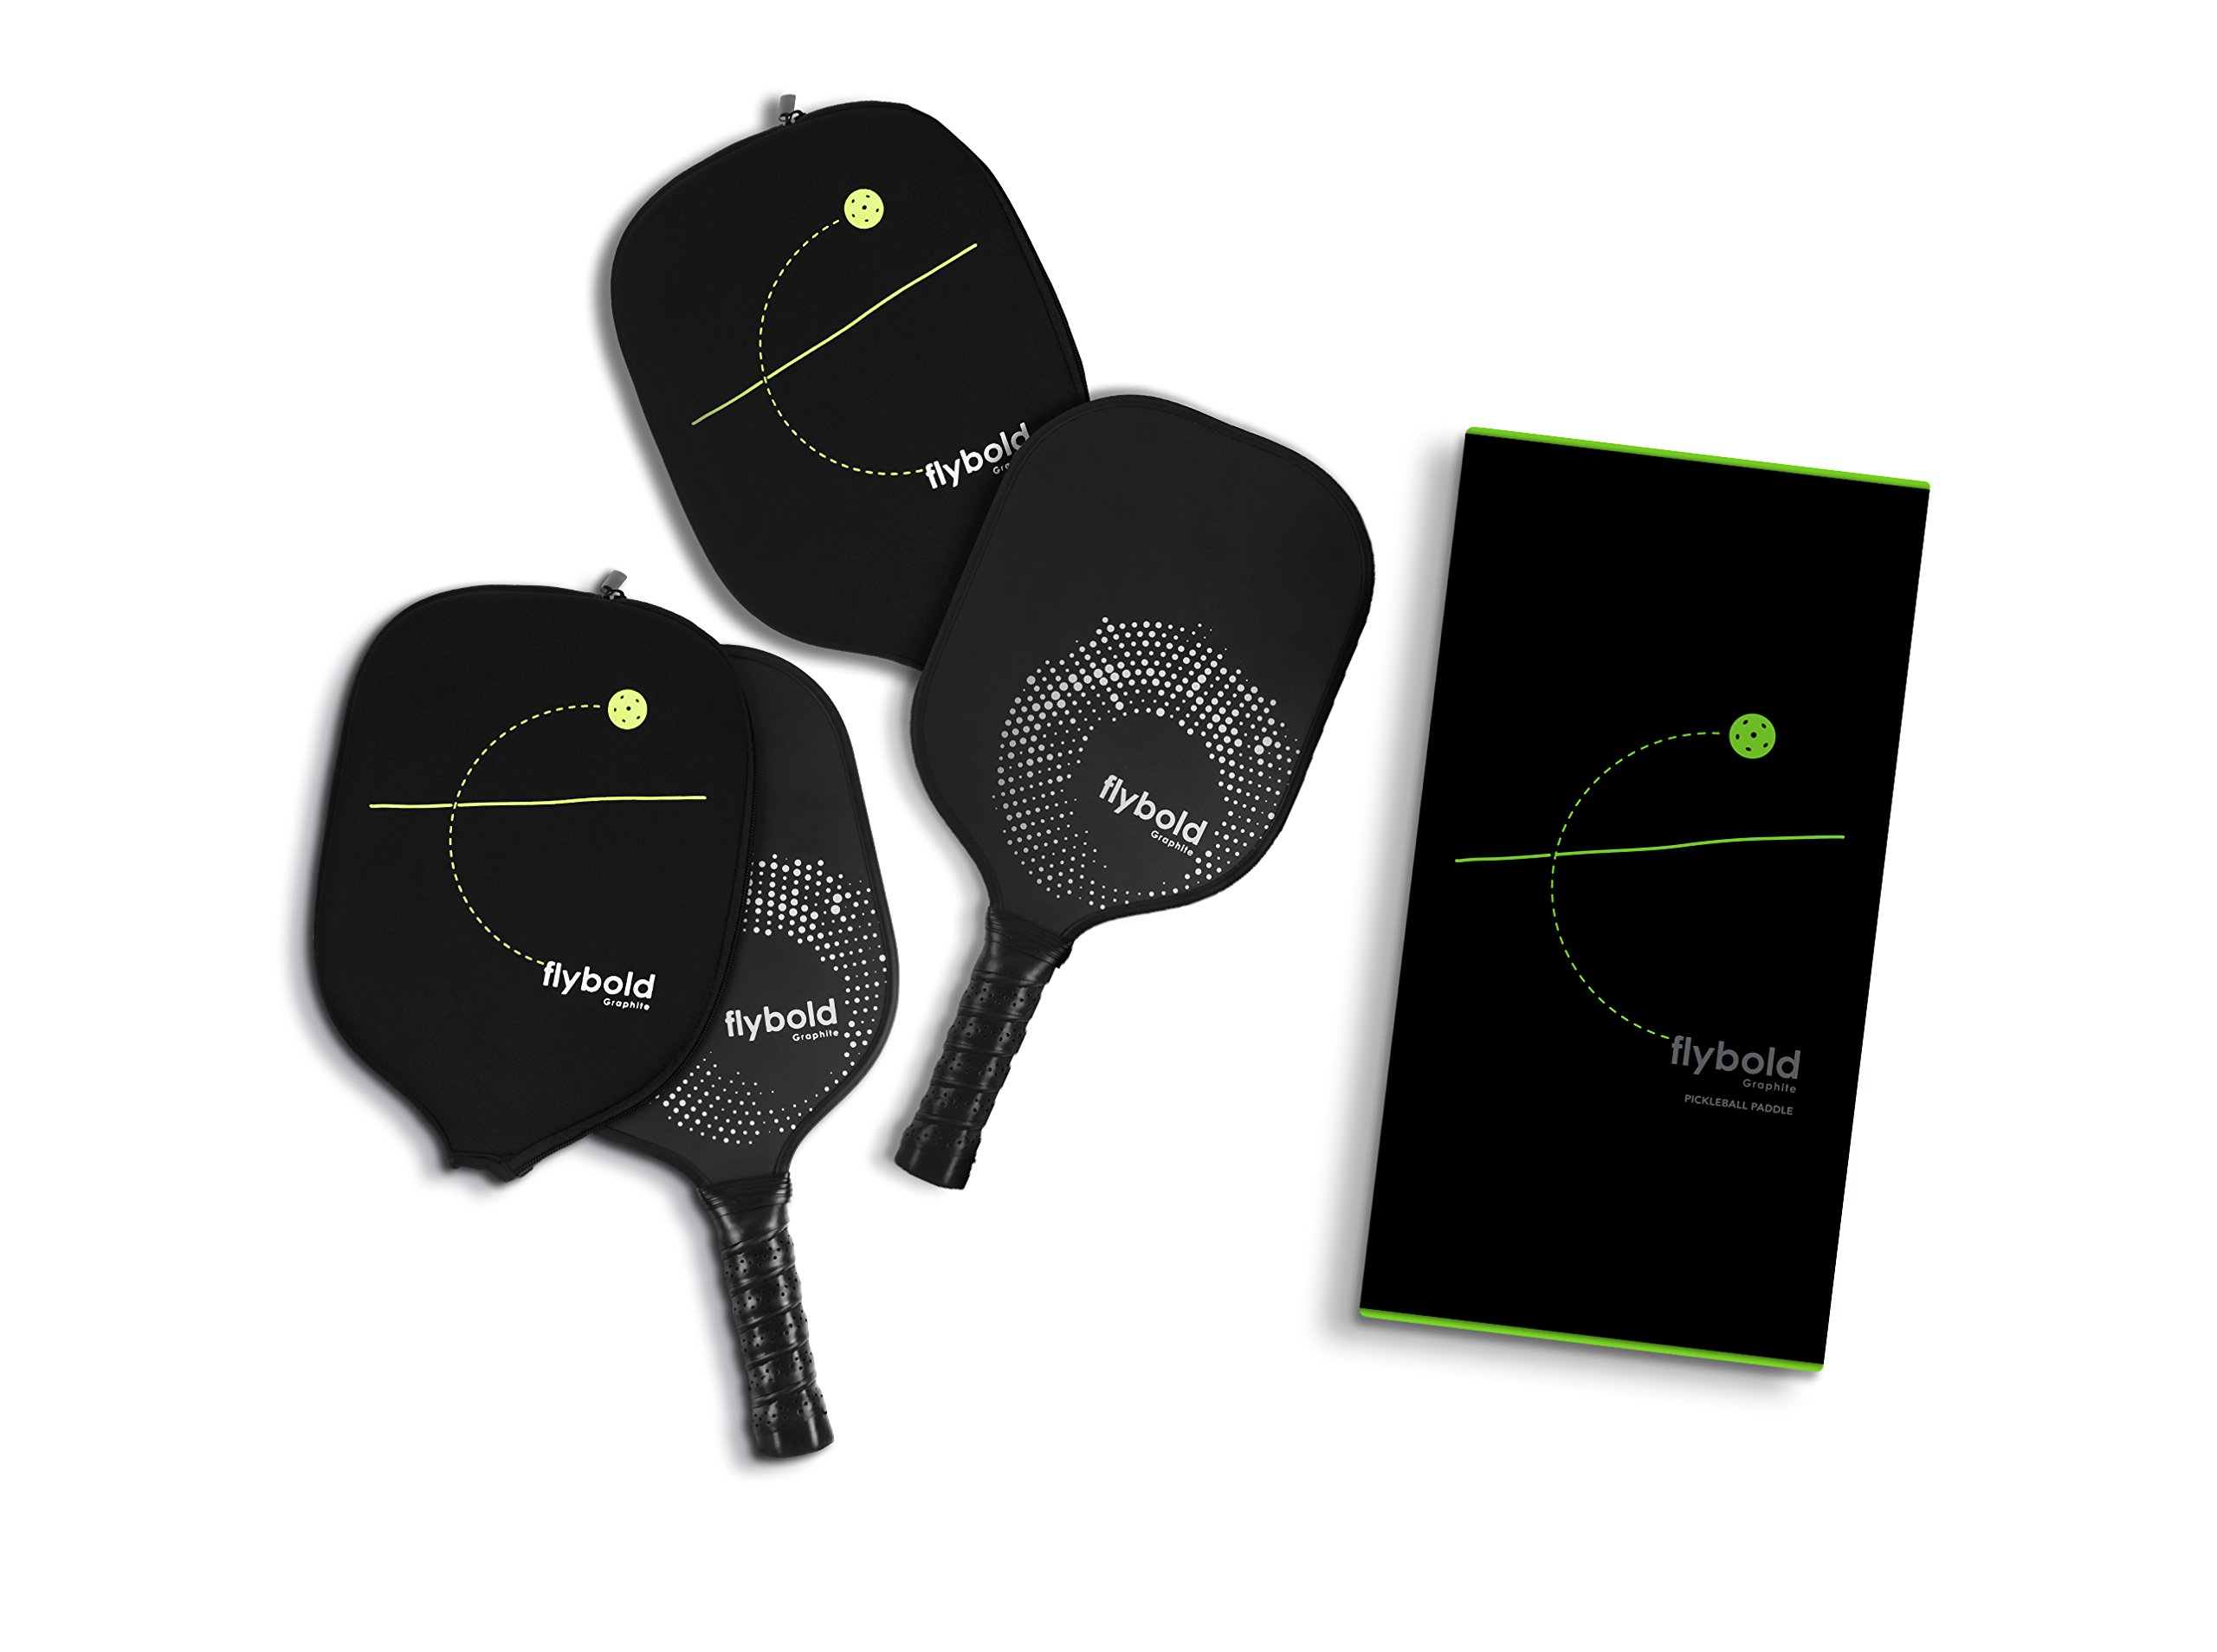 flybold Pickleball Paddle Set of 2 Graphite Face Polymer Honeycomb Core Ultra Cushion Grip Low Profile Edge Guard Perfect Grip Size Light Weight Neoprene Case by flybold